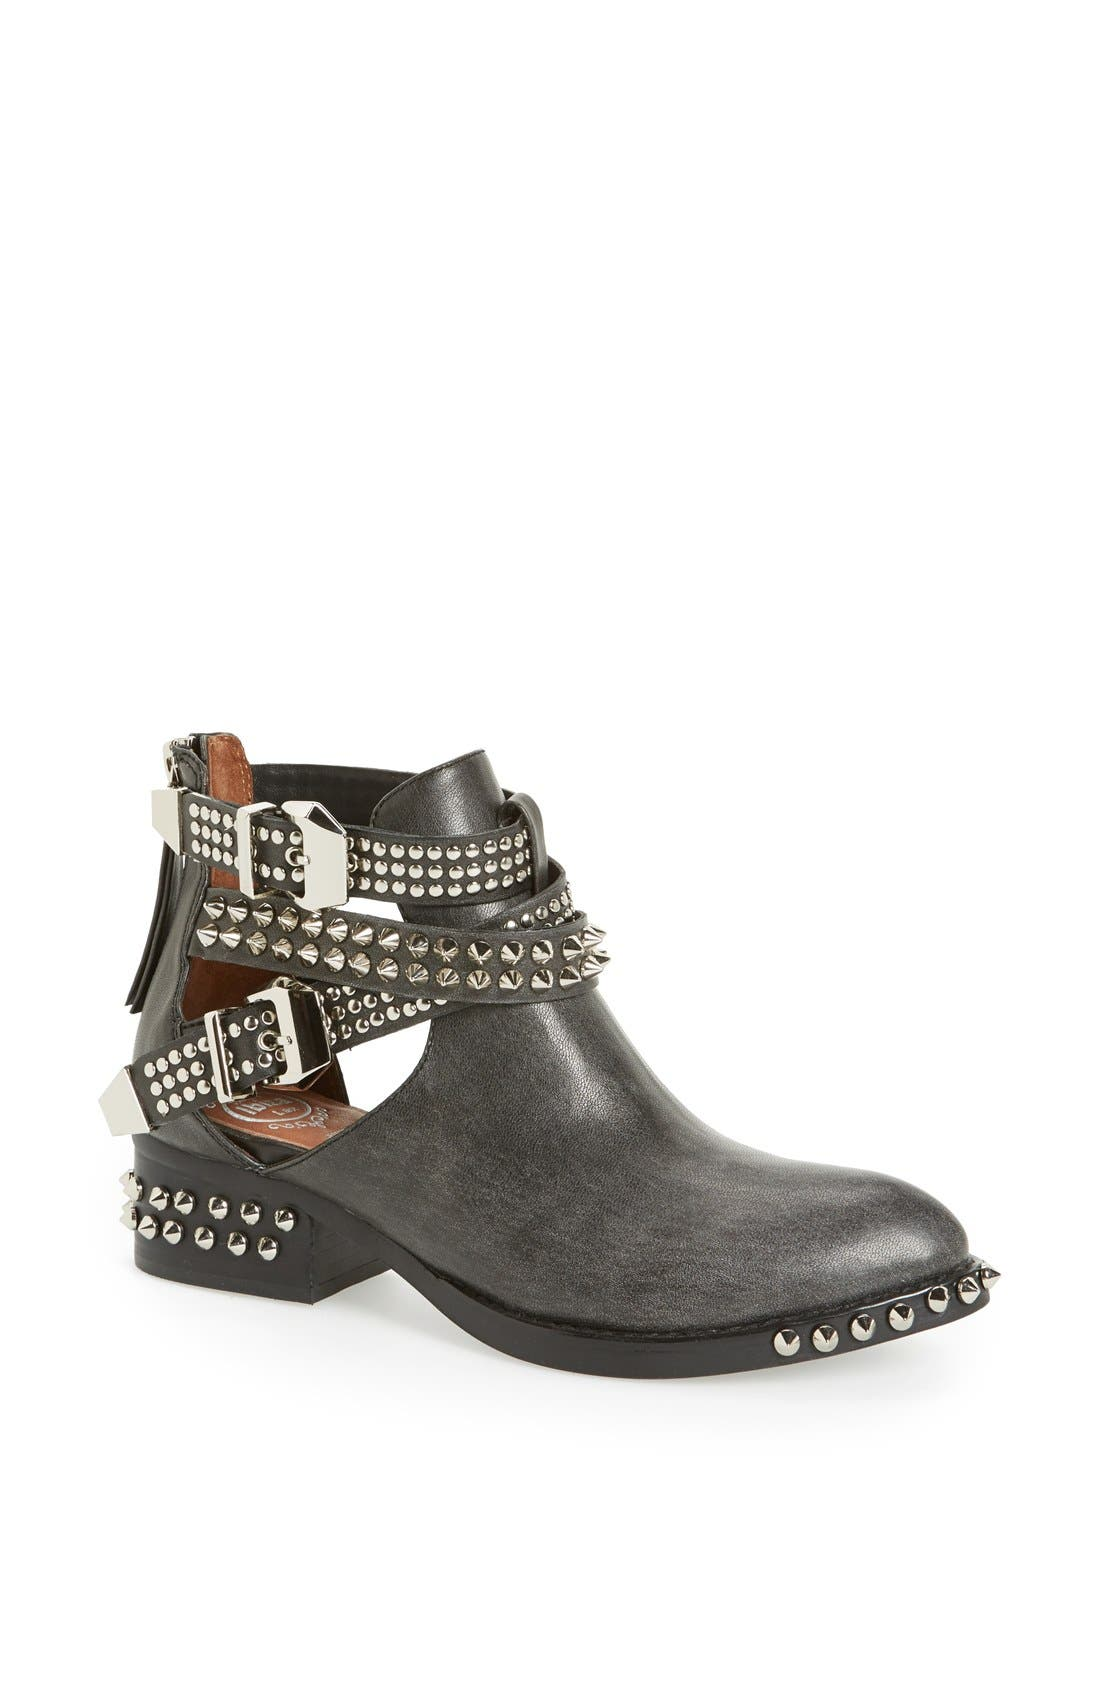 Main Image - Jeffrey Campbell 'Everly' Spiked Bootie